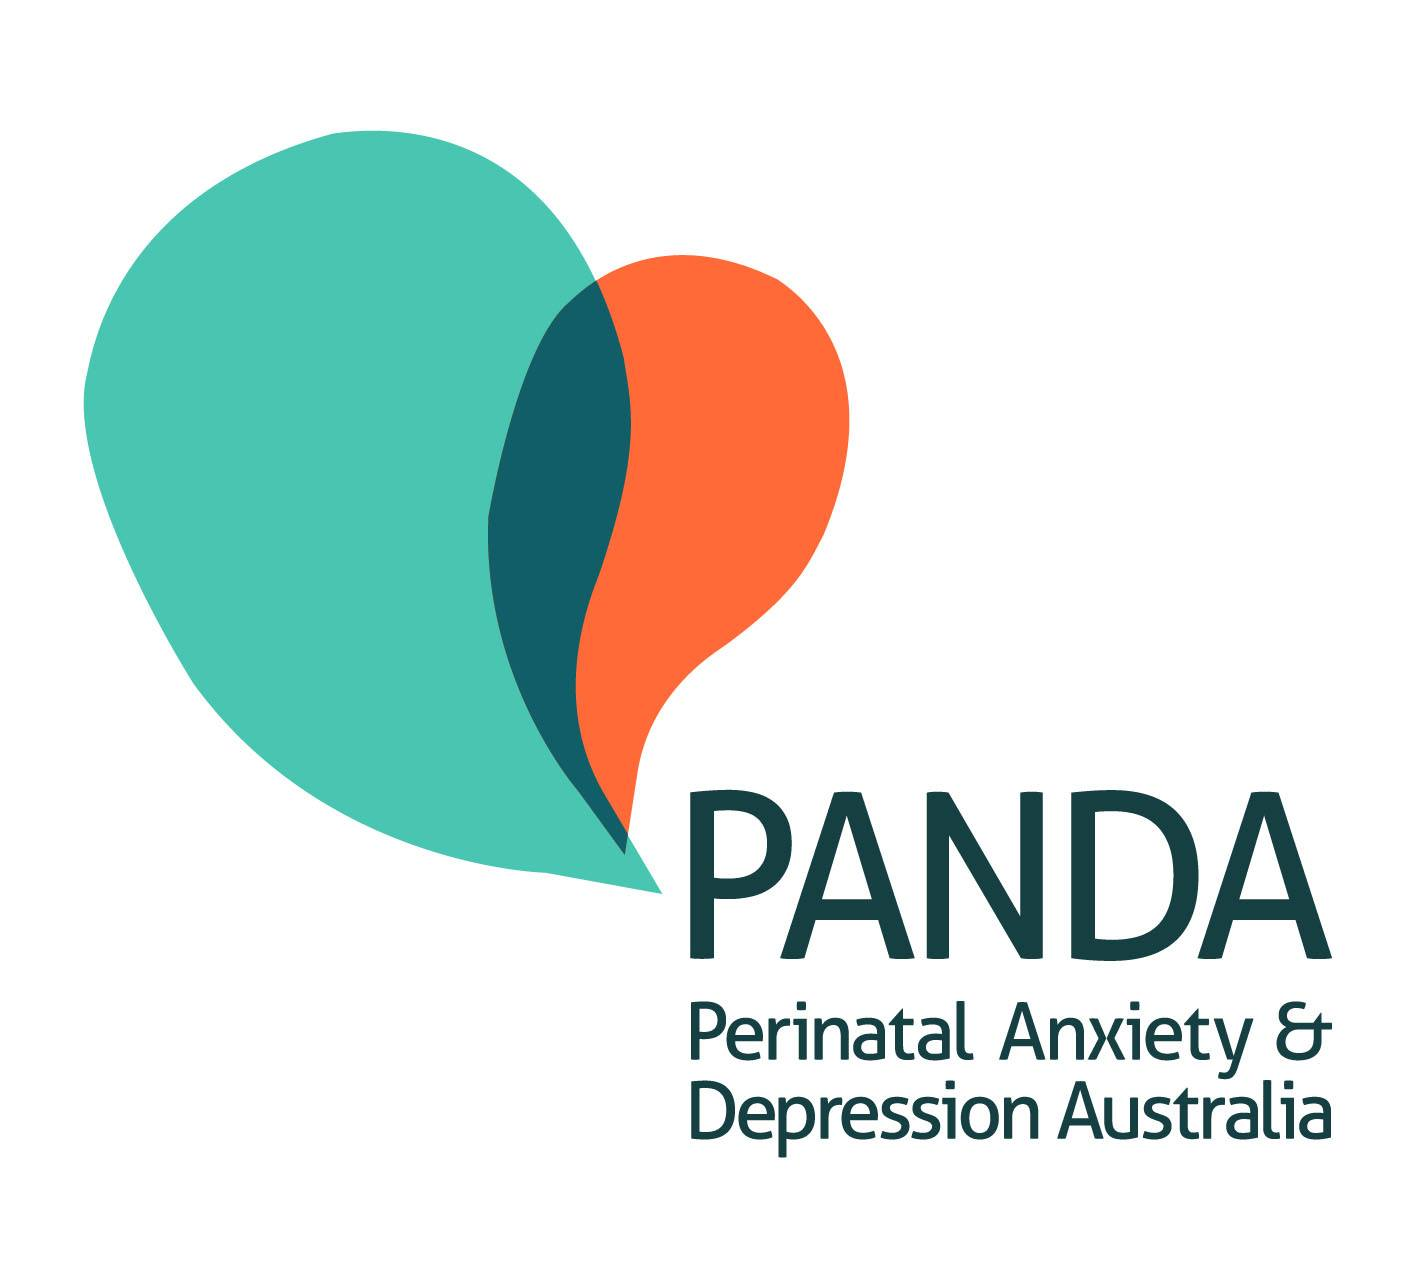 PANDA 1300 72 63 06 National Helpline OR  www.panda.org.au   PANDA - Perinatal Anxiety & Depression Australia supports women, men and families across Australia to recover from post and antenatal depression and anxiety